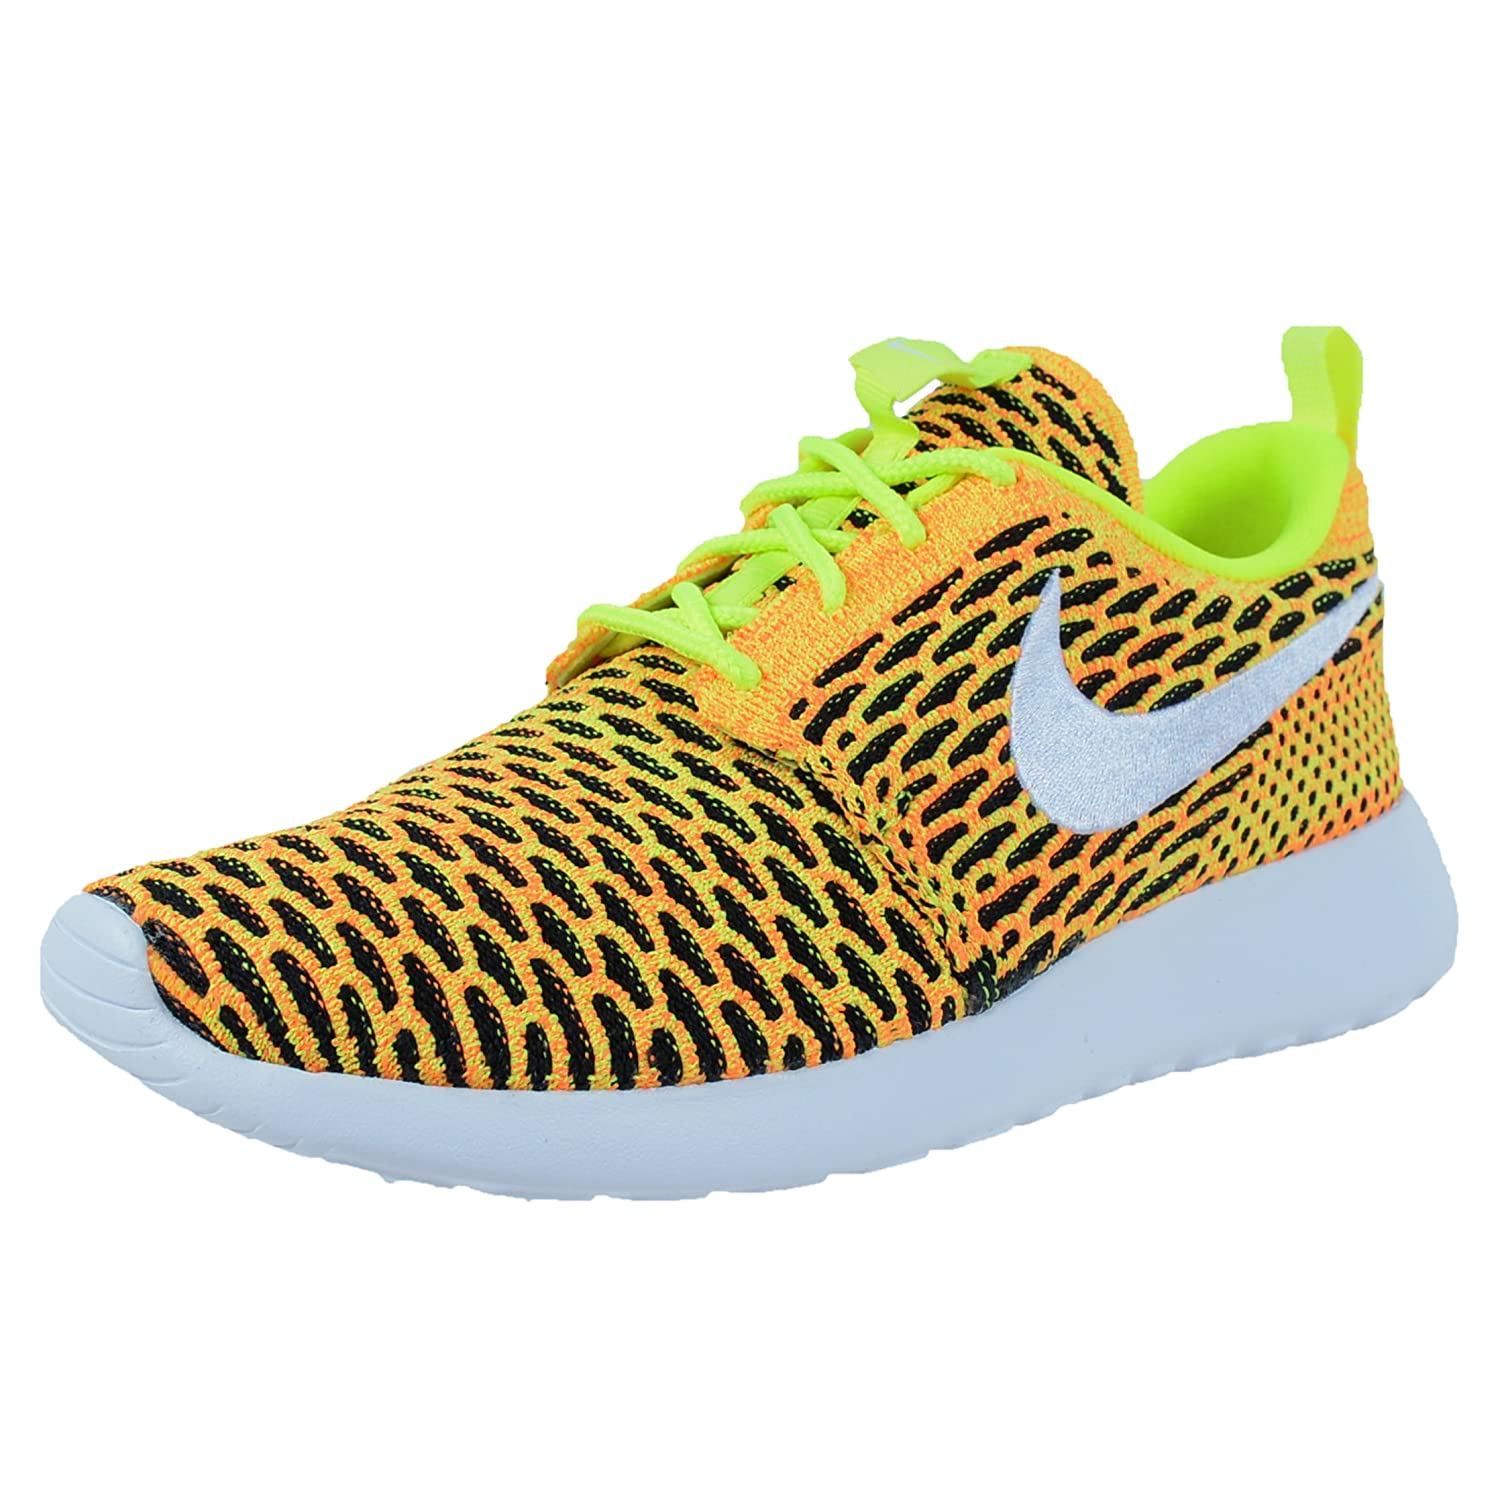 new style d9740 a58d0 85%OFF NIKE WOMENS ROSHE ONE FLYKNIT CASUAL SHOES VOLT WHITE TOTAL ORANGE  704927 702